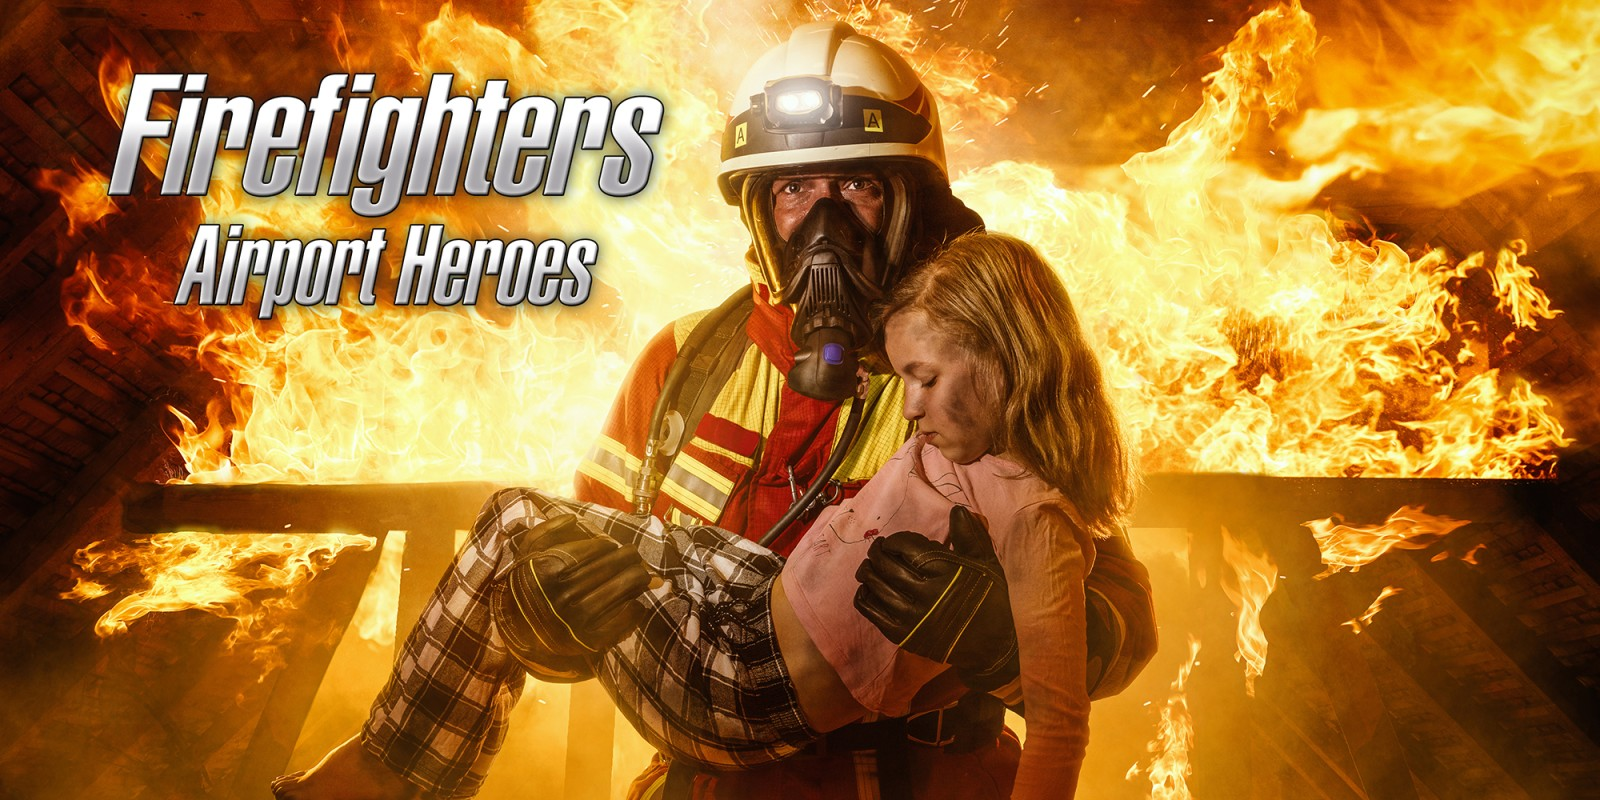 Firefighters - Airport Heroes